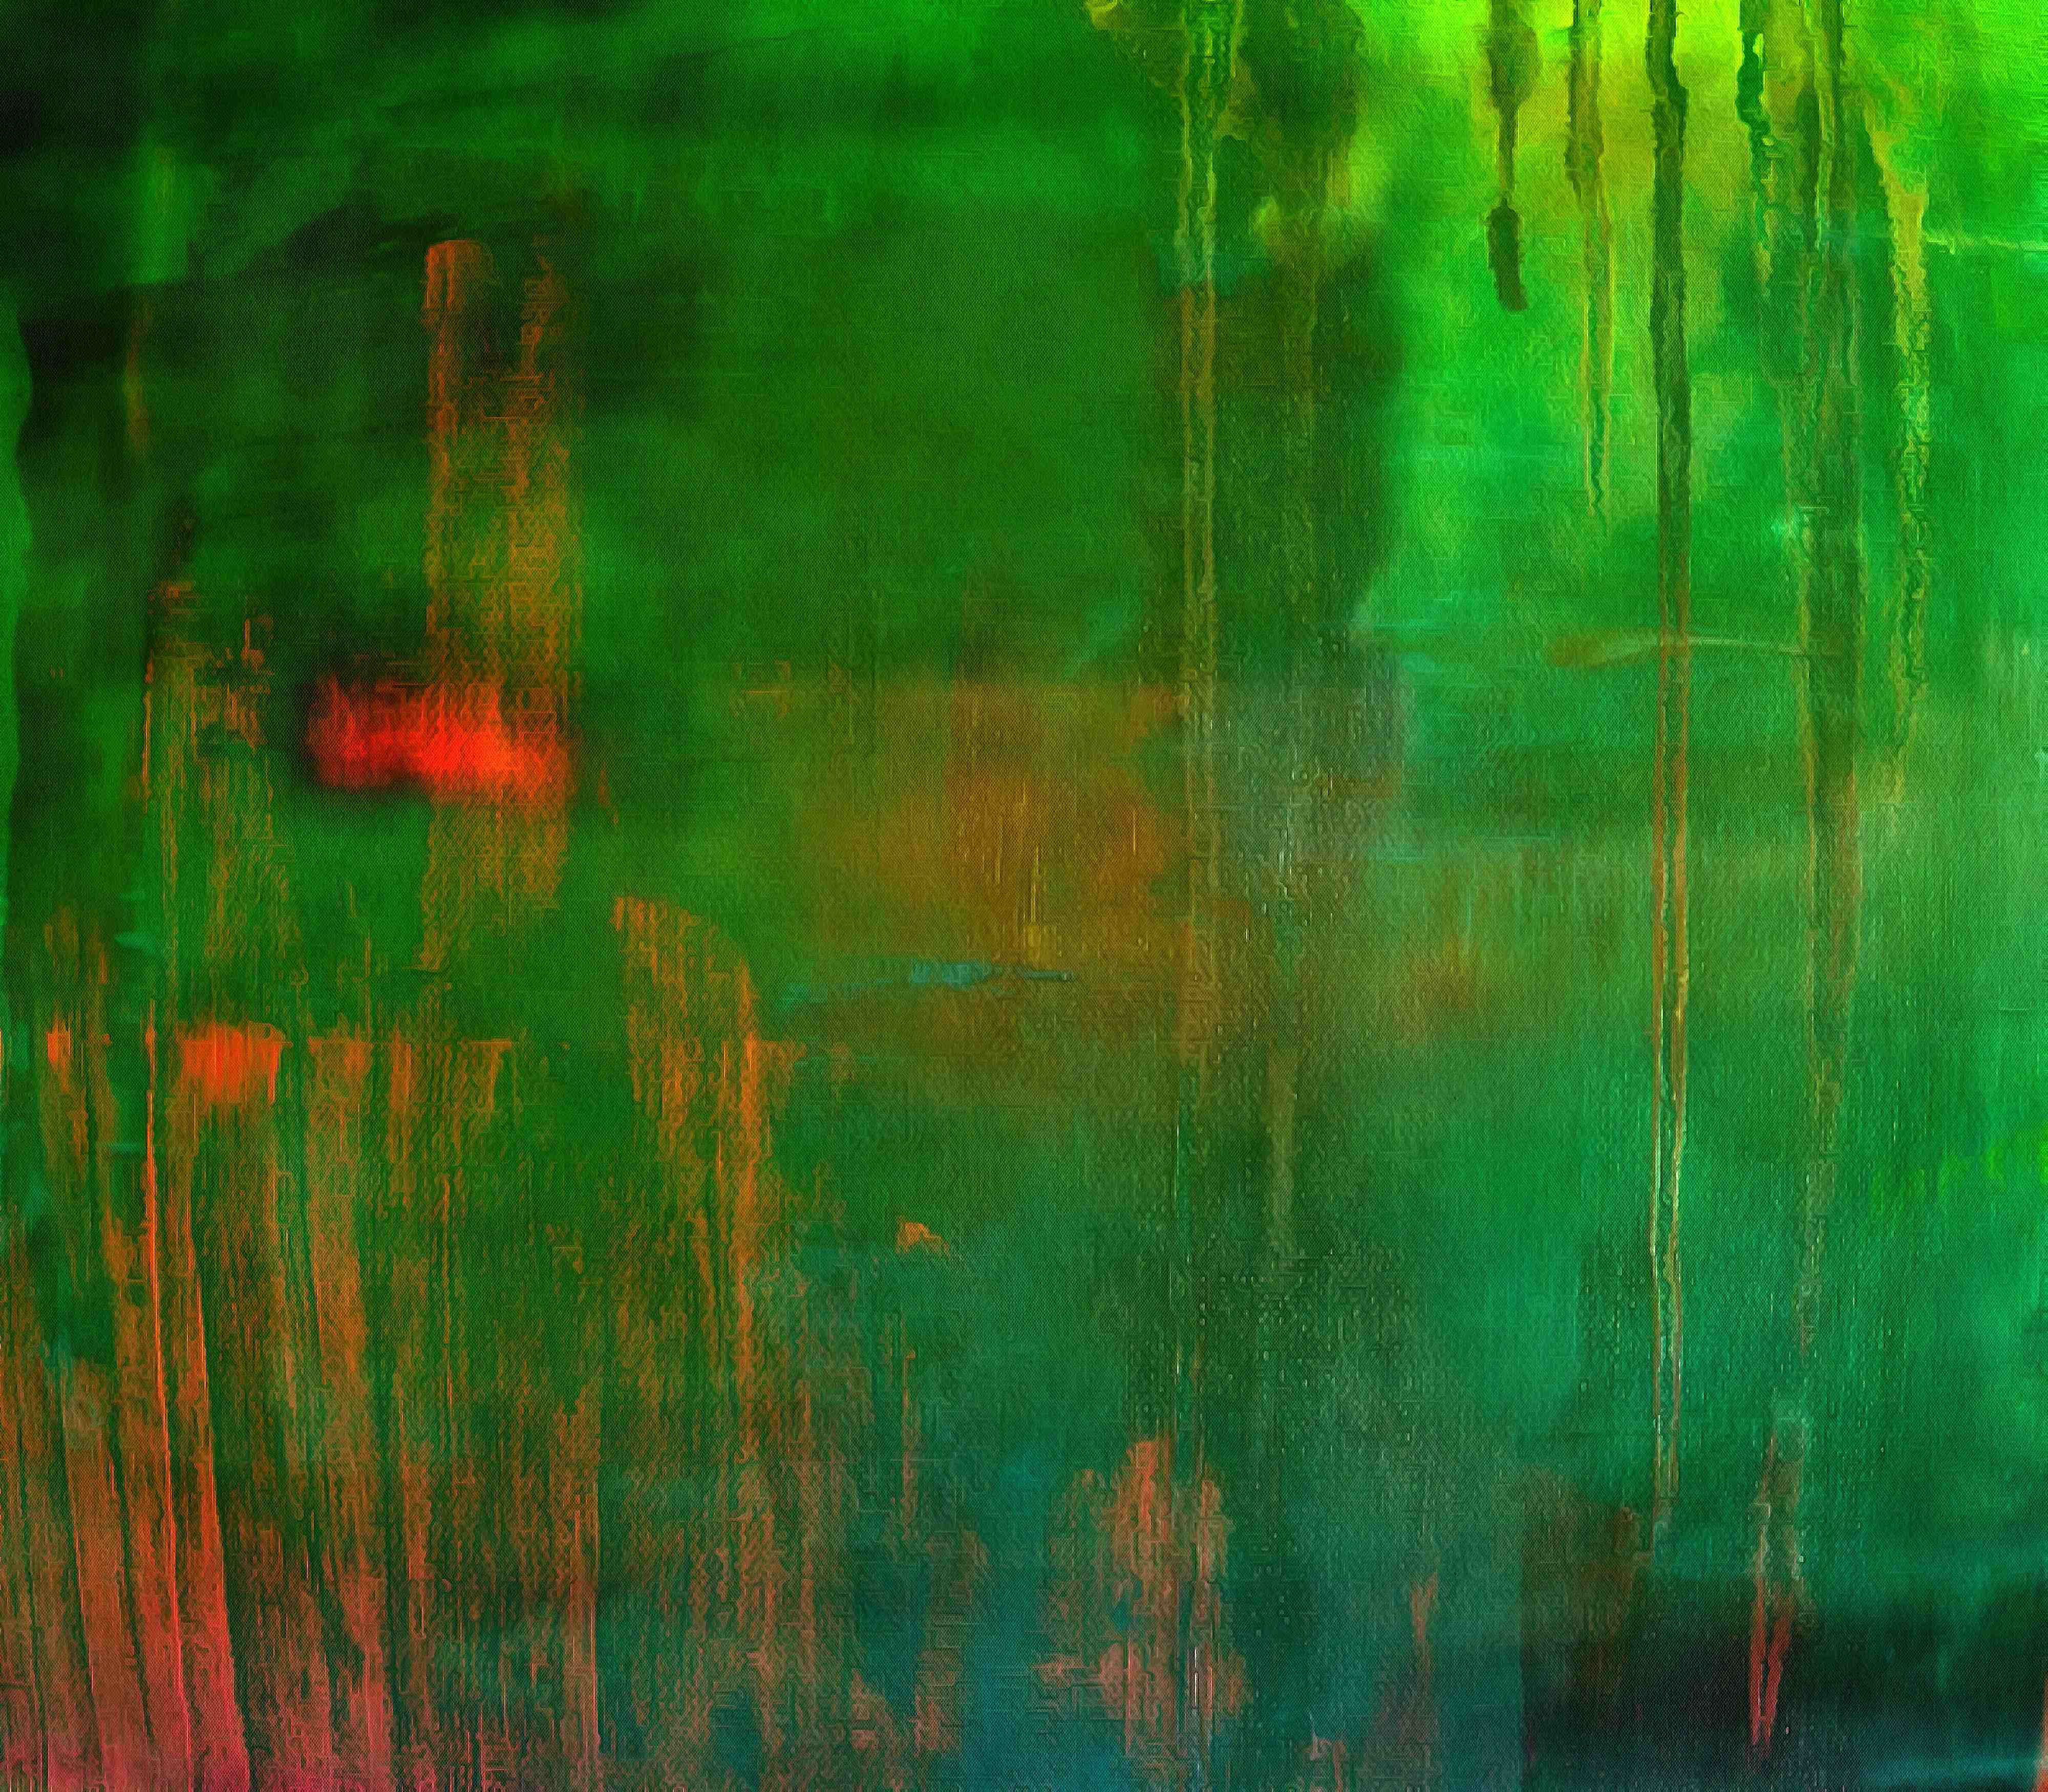 background, green, backdrop, paint, texture , abstract, art, stock free images, free illustrtions, free images, free image, public domain image, download free image